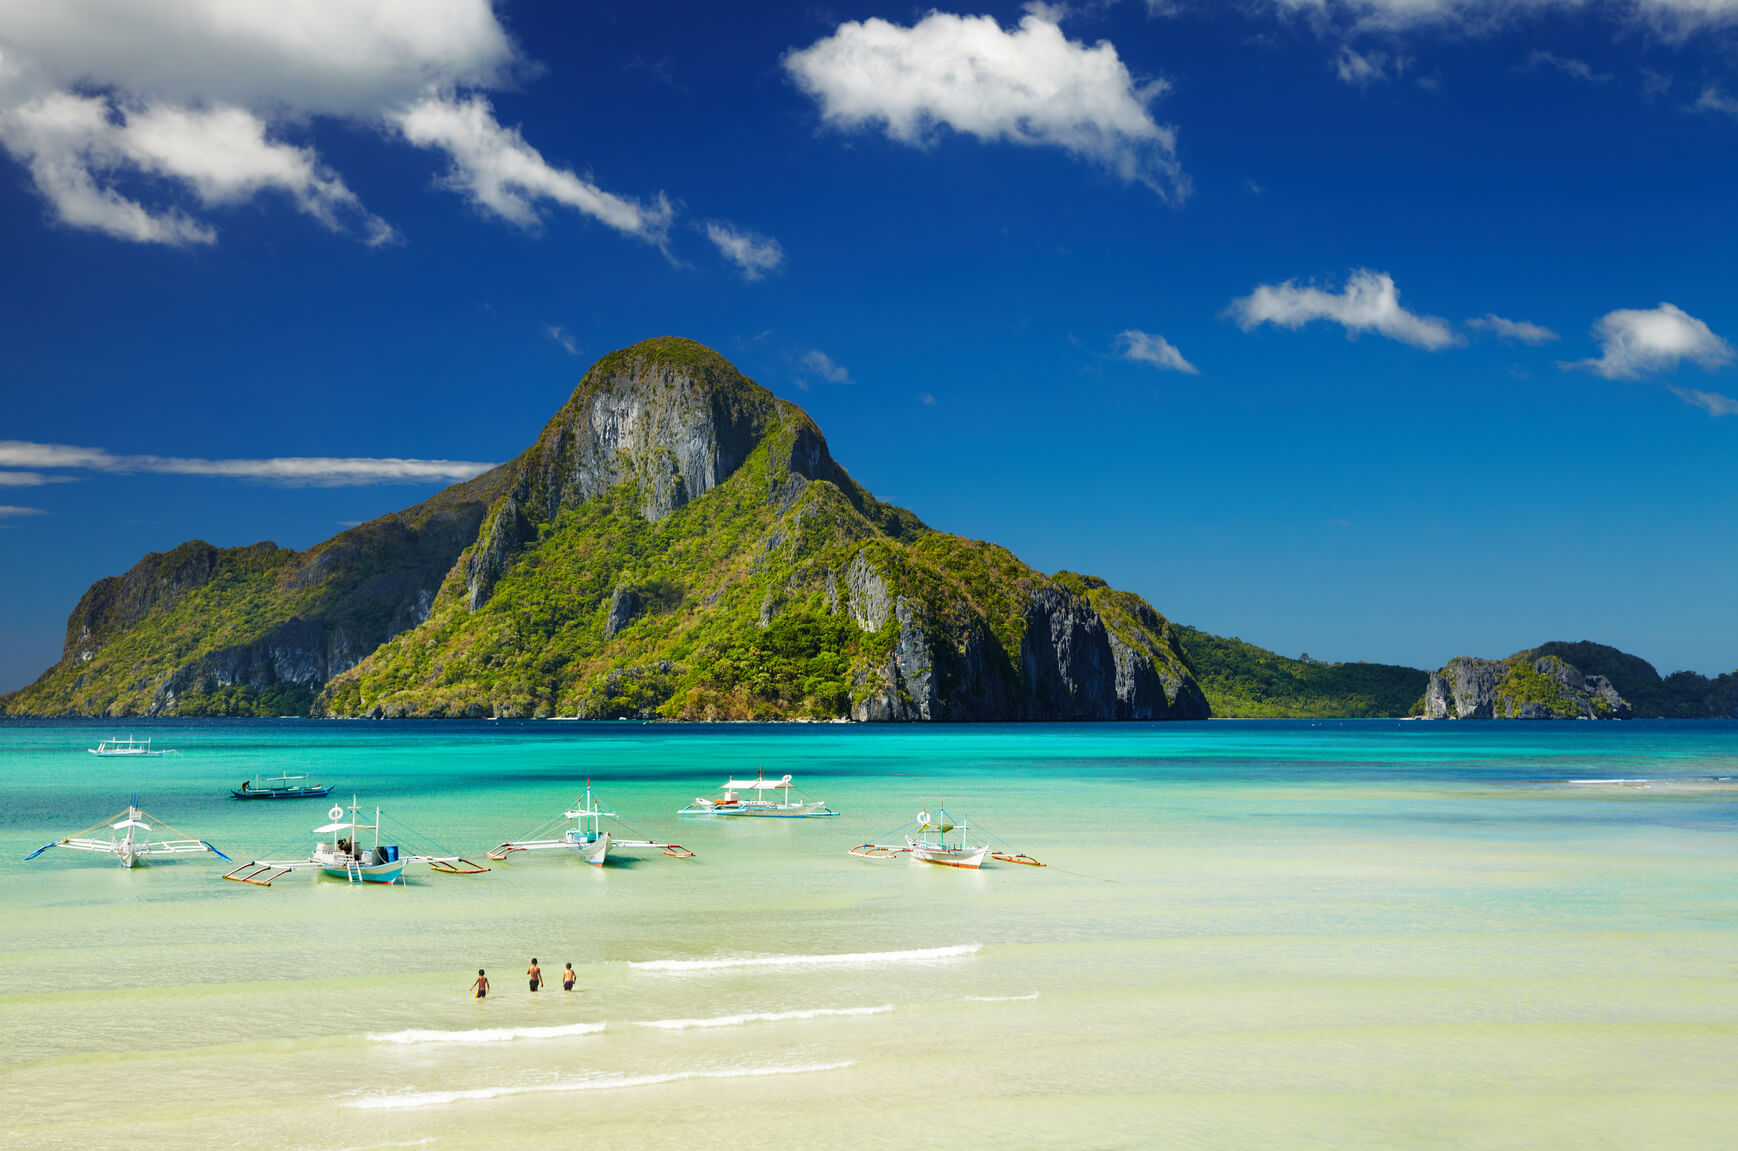 New York to Manila, Philippines for only $436 roundtrip